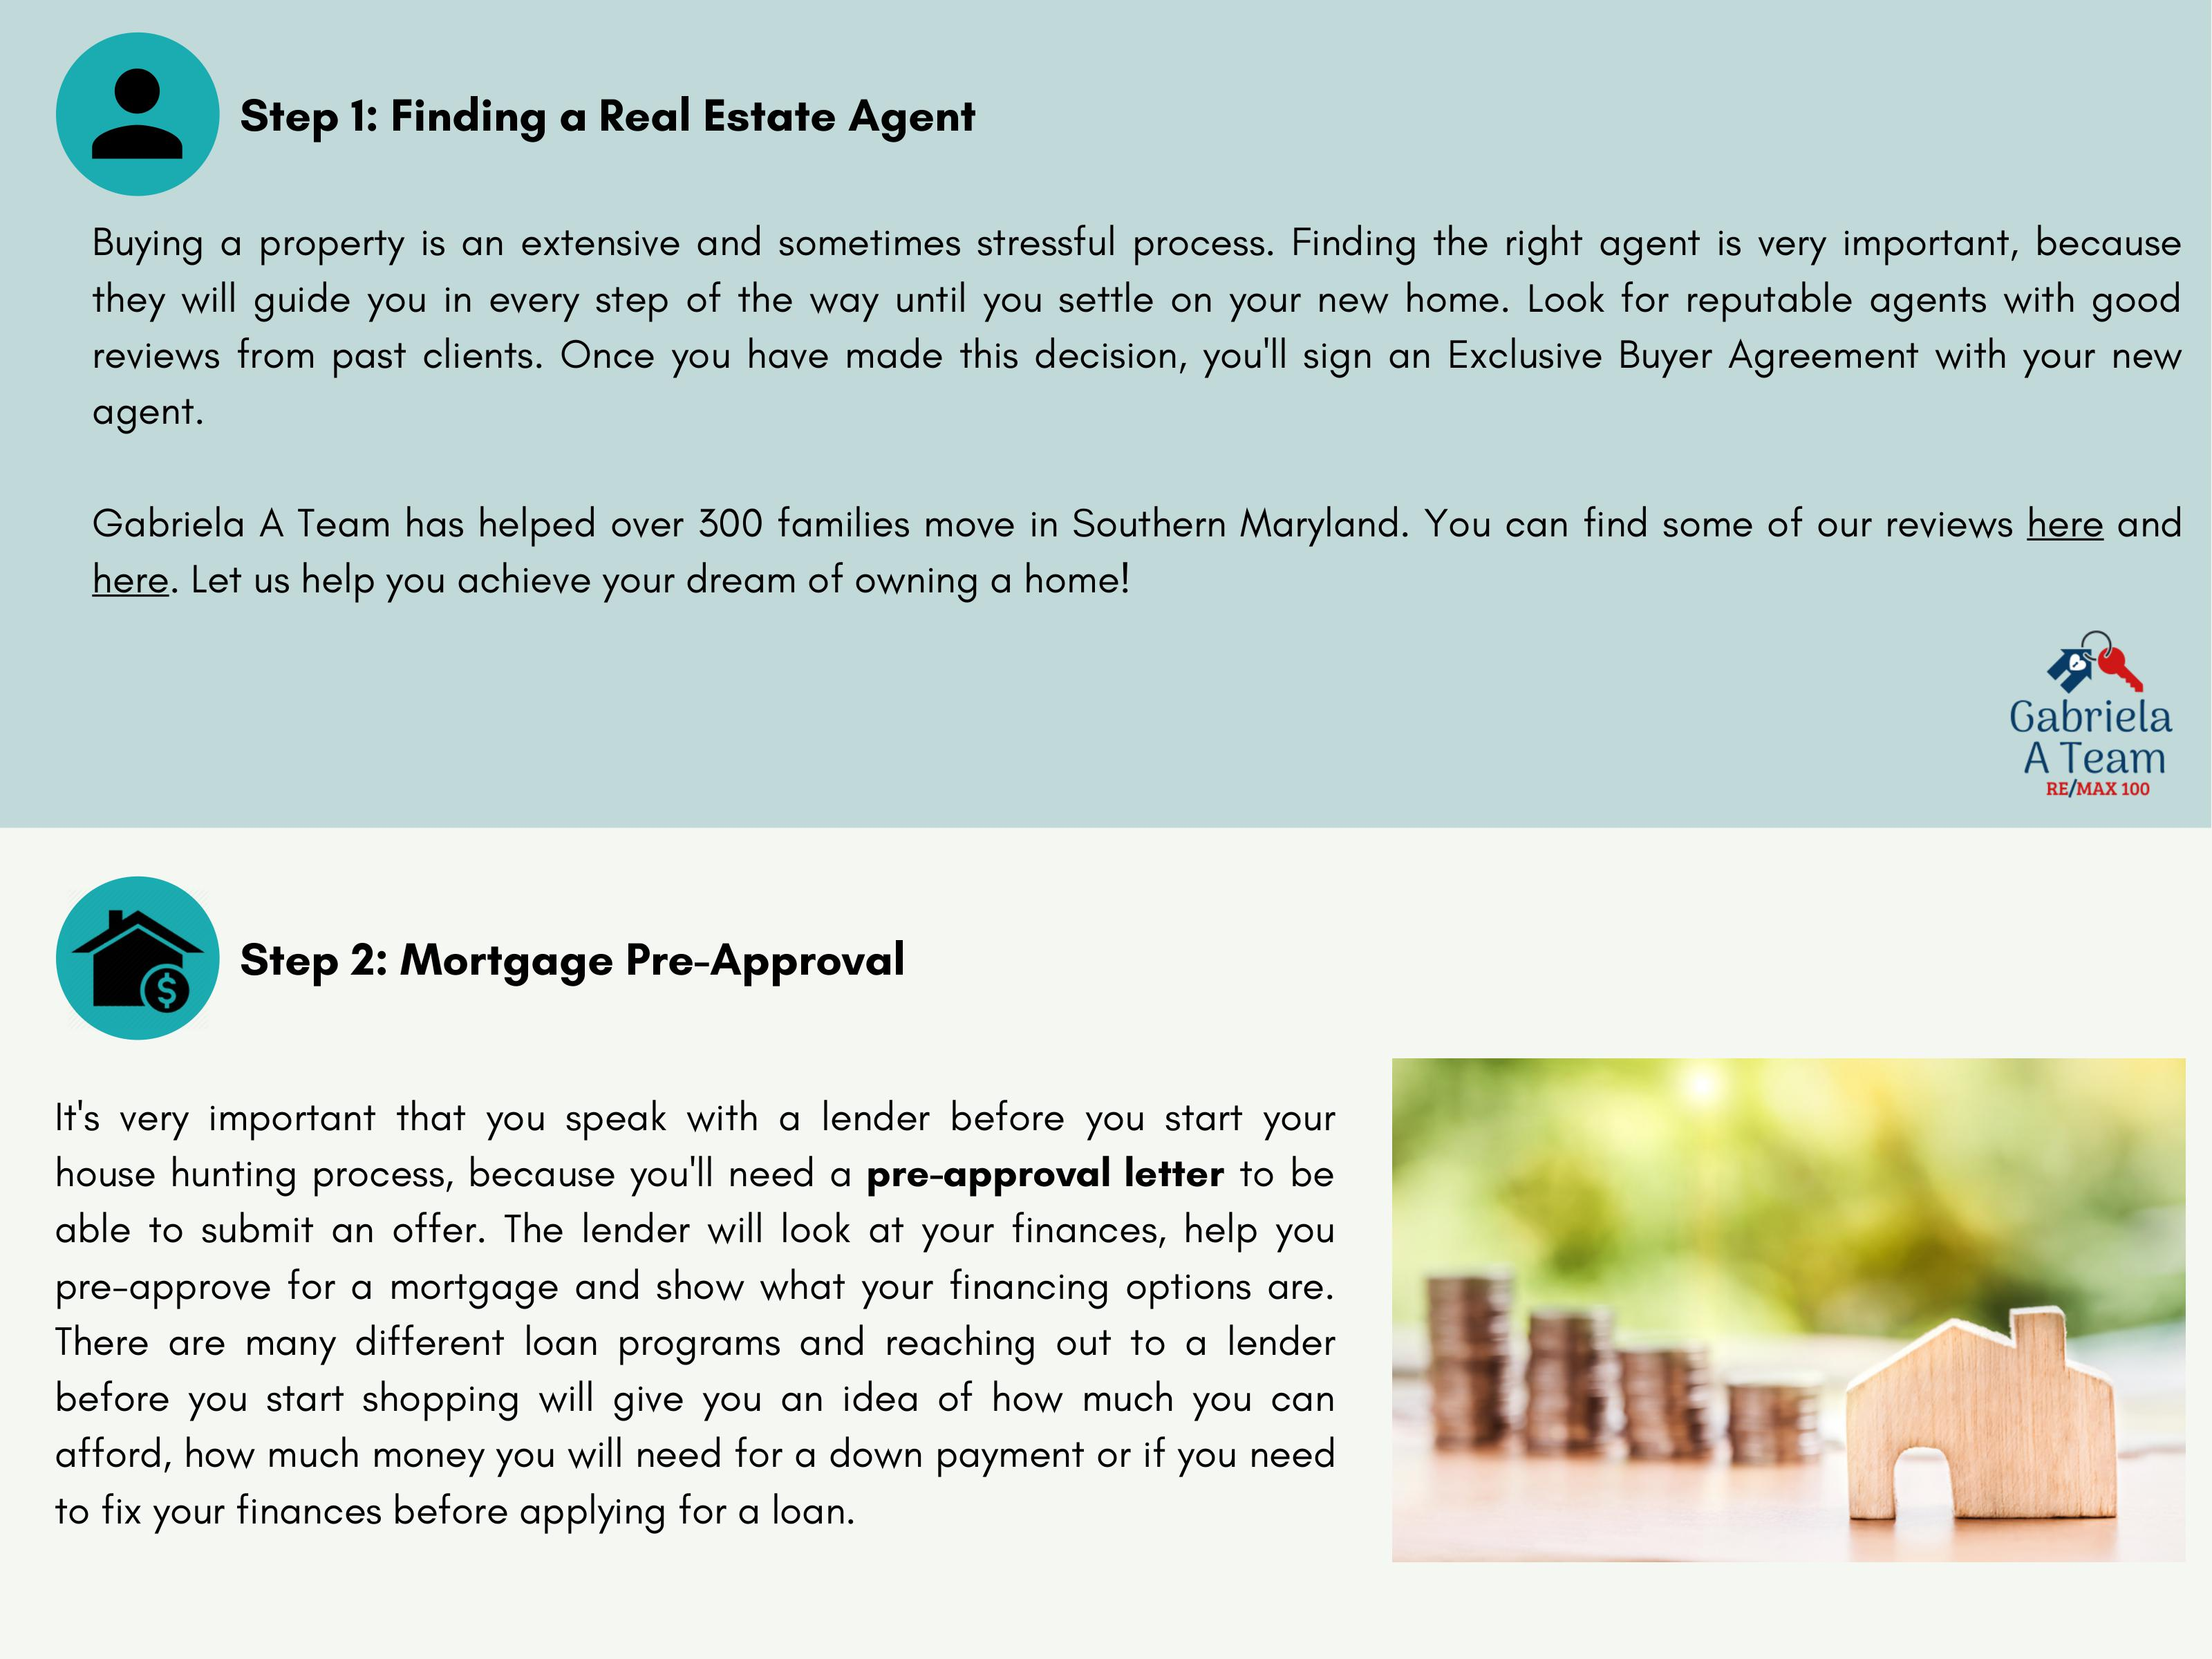 4th slide of home buying guide steps 1 and 2